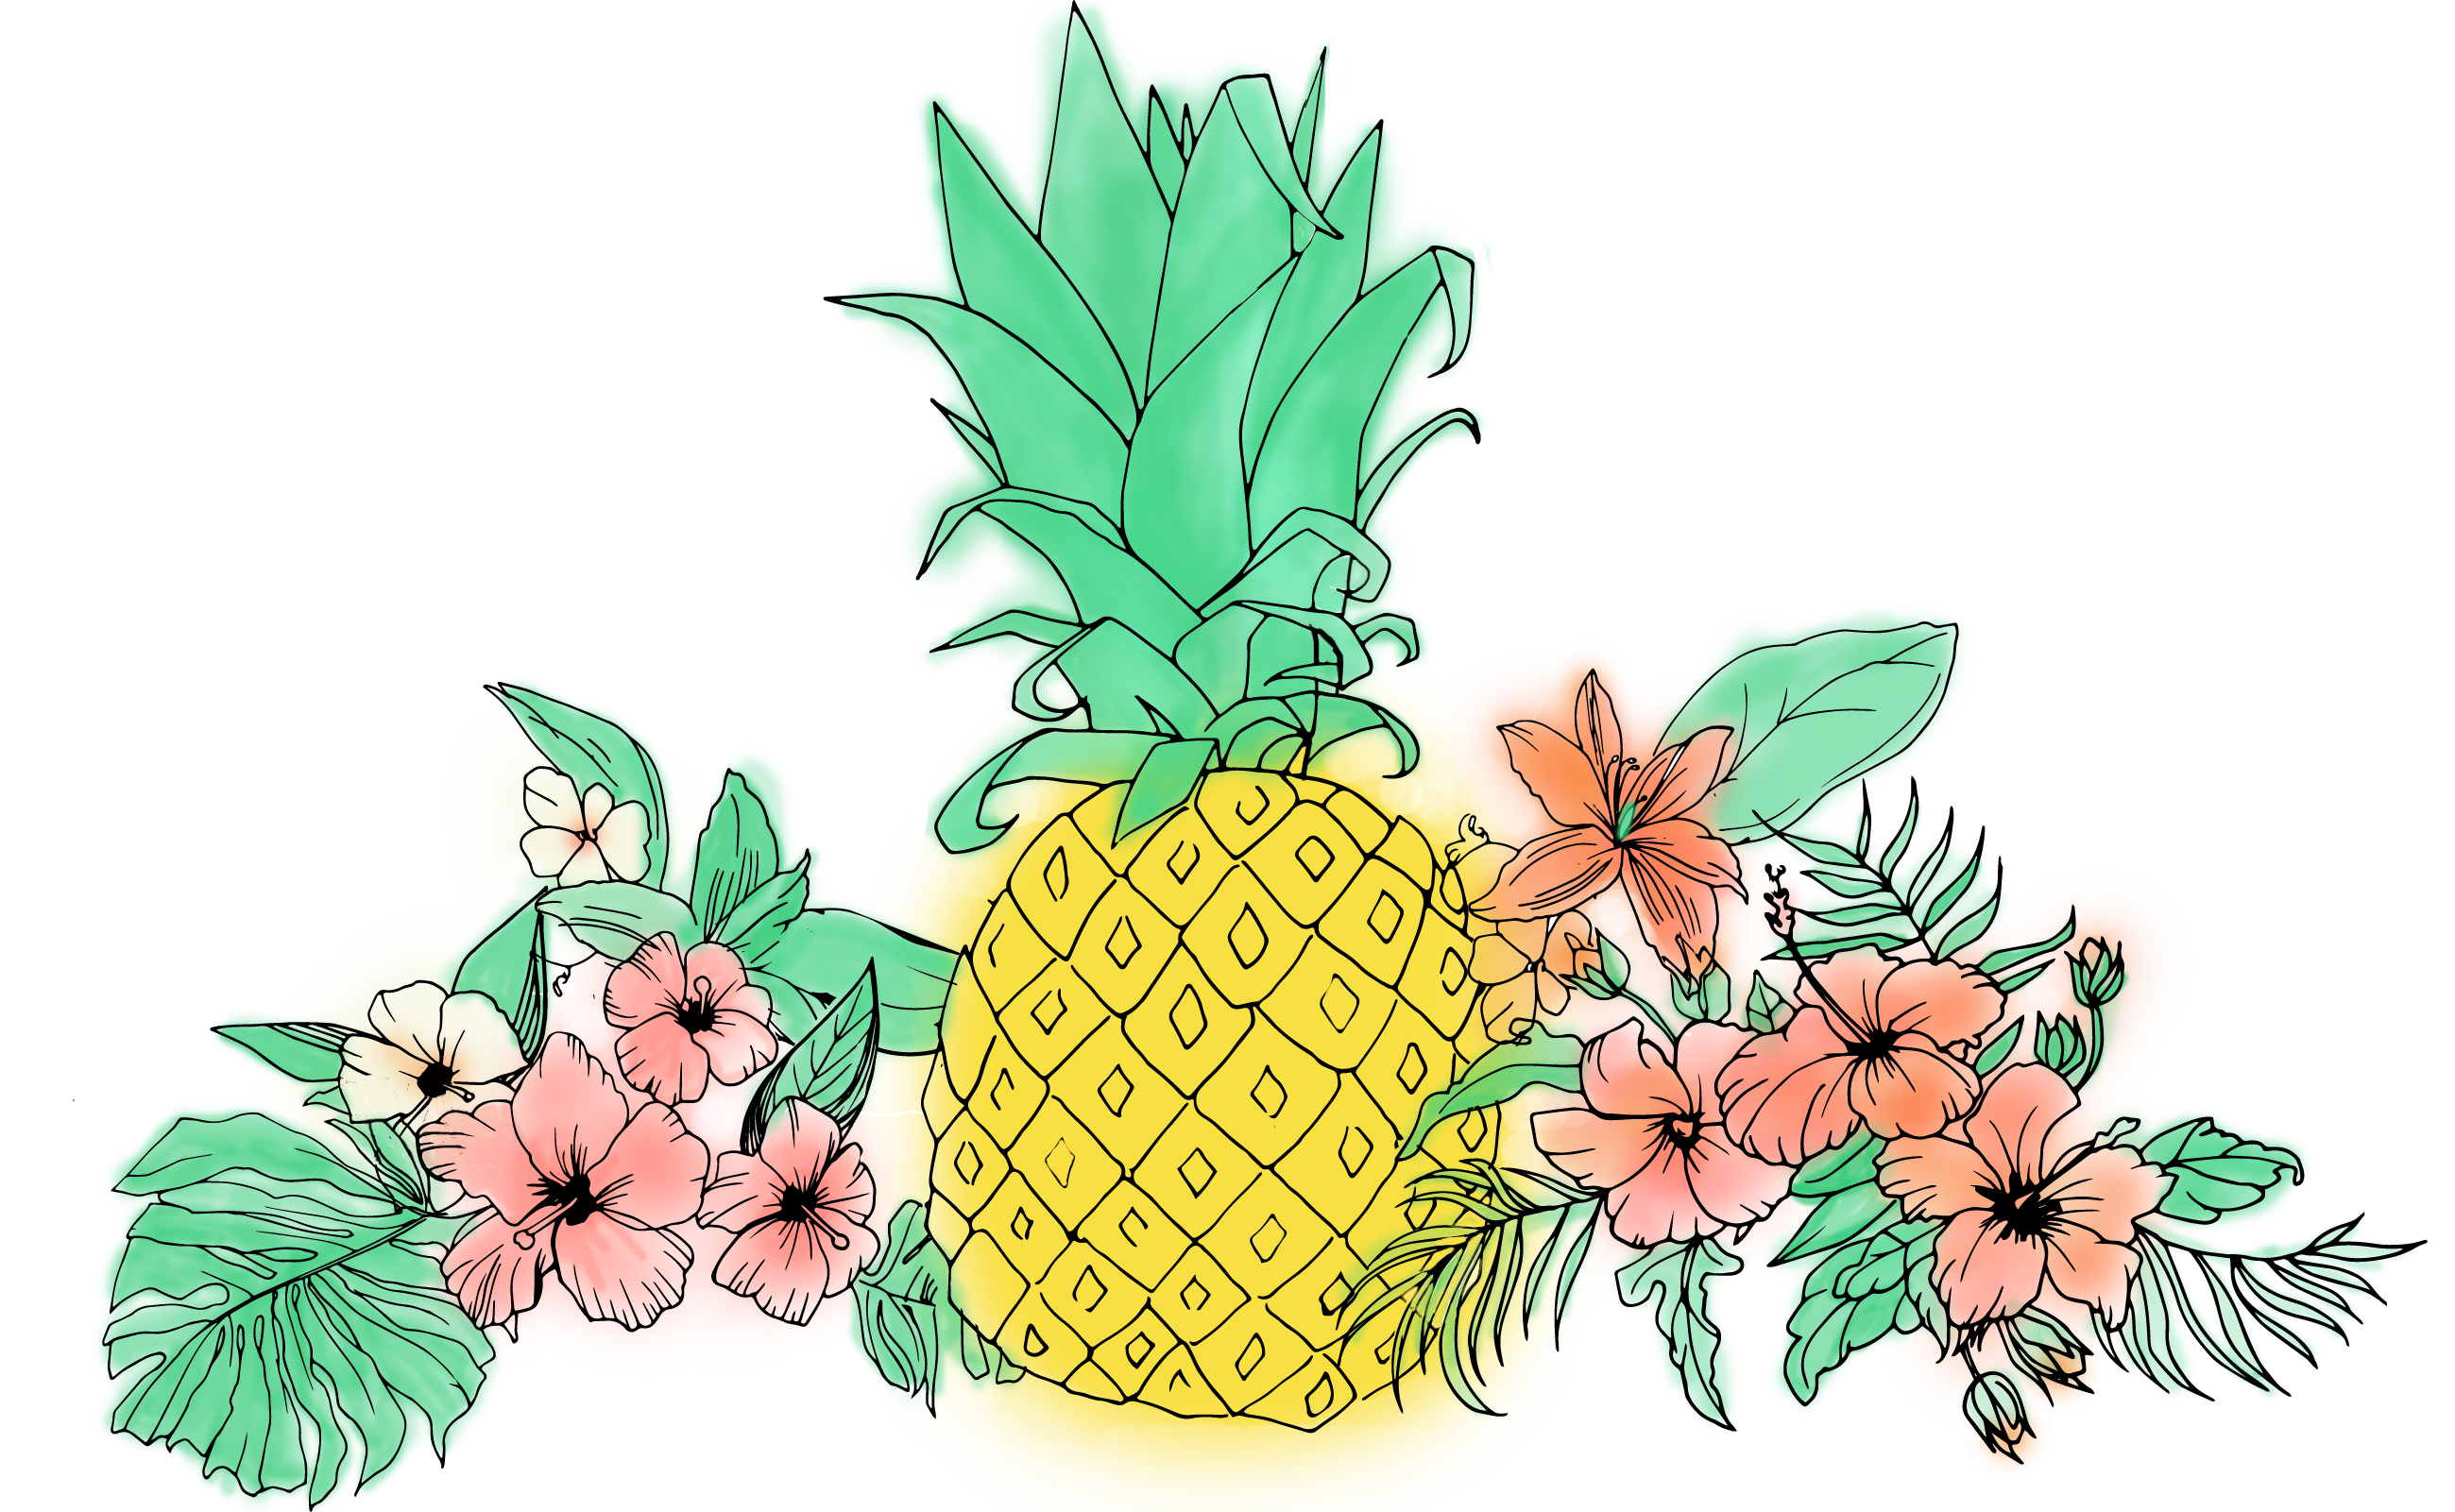 Pineapple flower clipart png free download Pineapple Fruit Flower Clip art - tropical flower 2599*1601 ... png free download